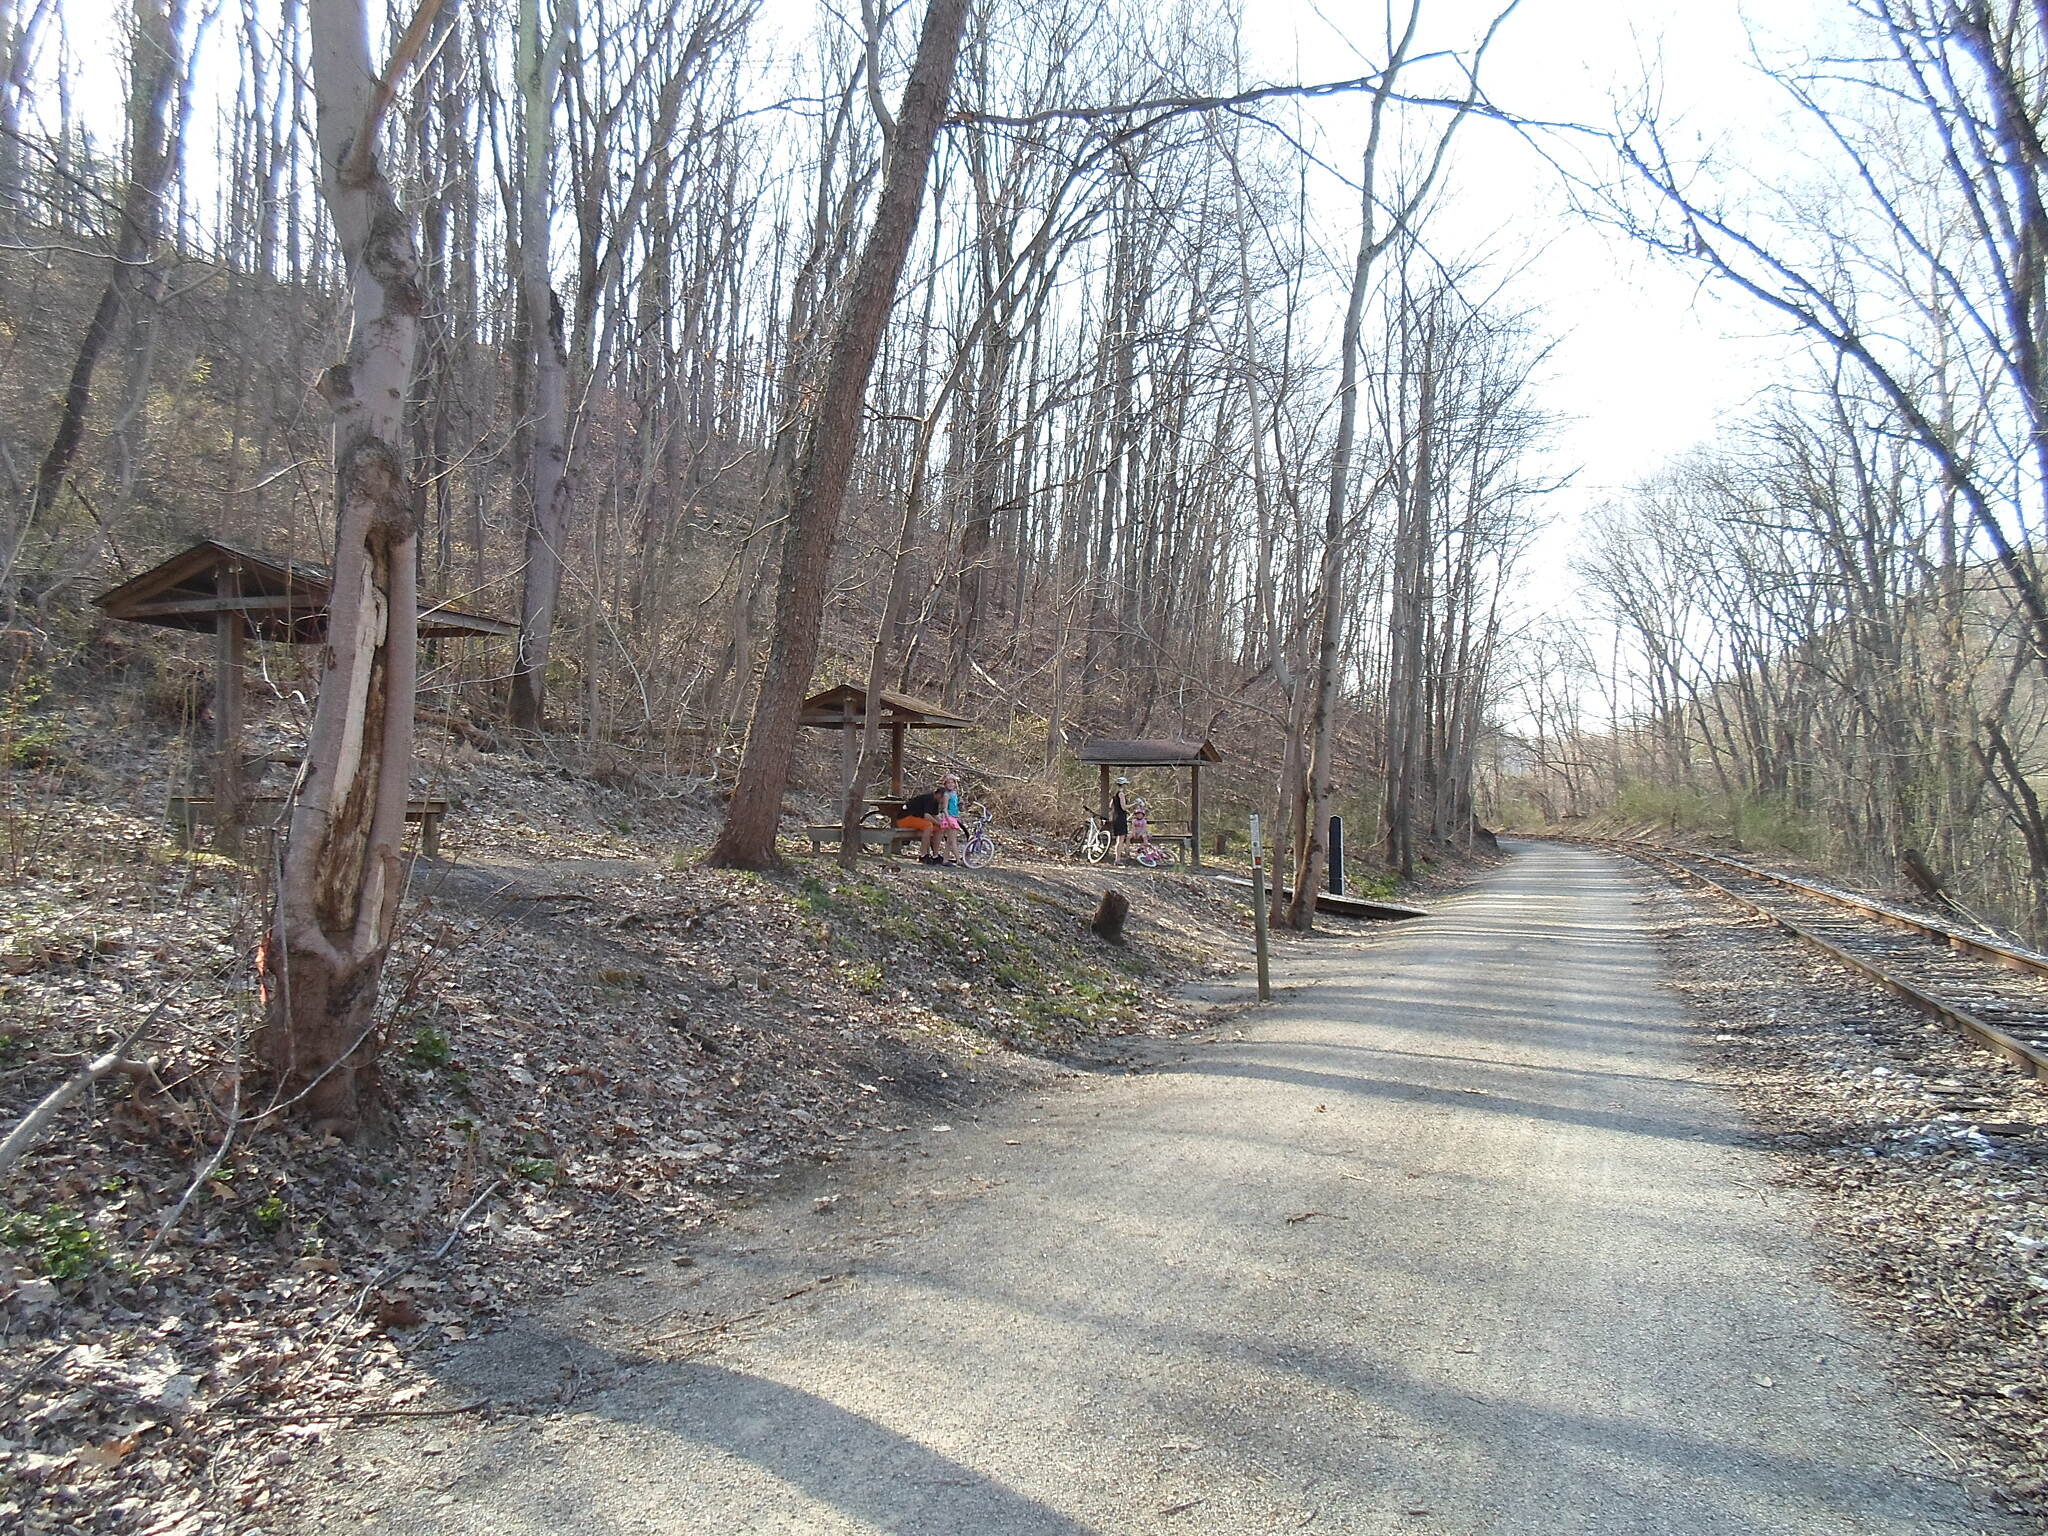 Heritage Rail Trail County Park Heritage Rail Trail Park Picnic grove off the trail in Shrewsbury Twp. between Railroad and Glen Rock. Taken April 2015.